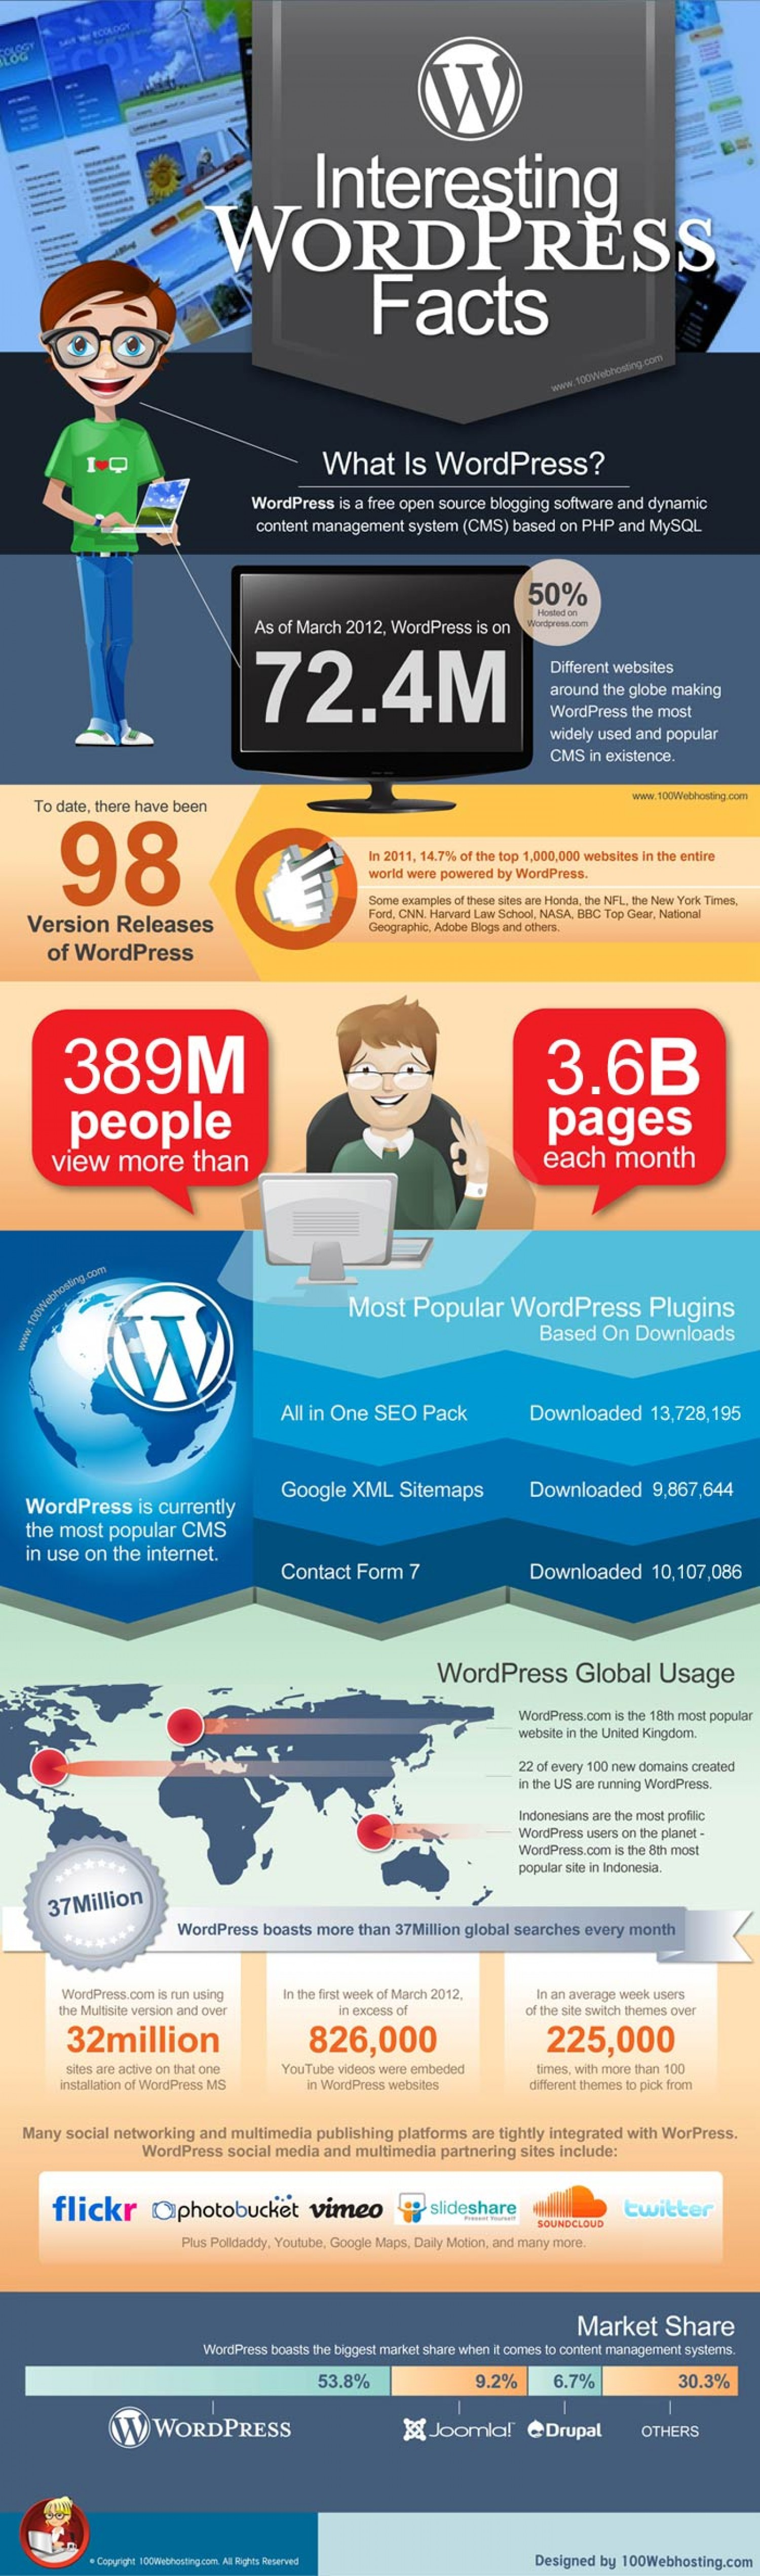 9. Interesting WordPress Facts